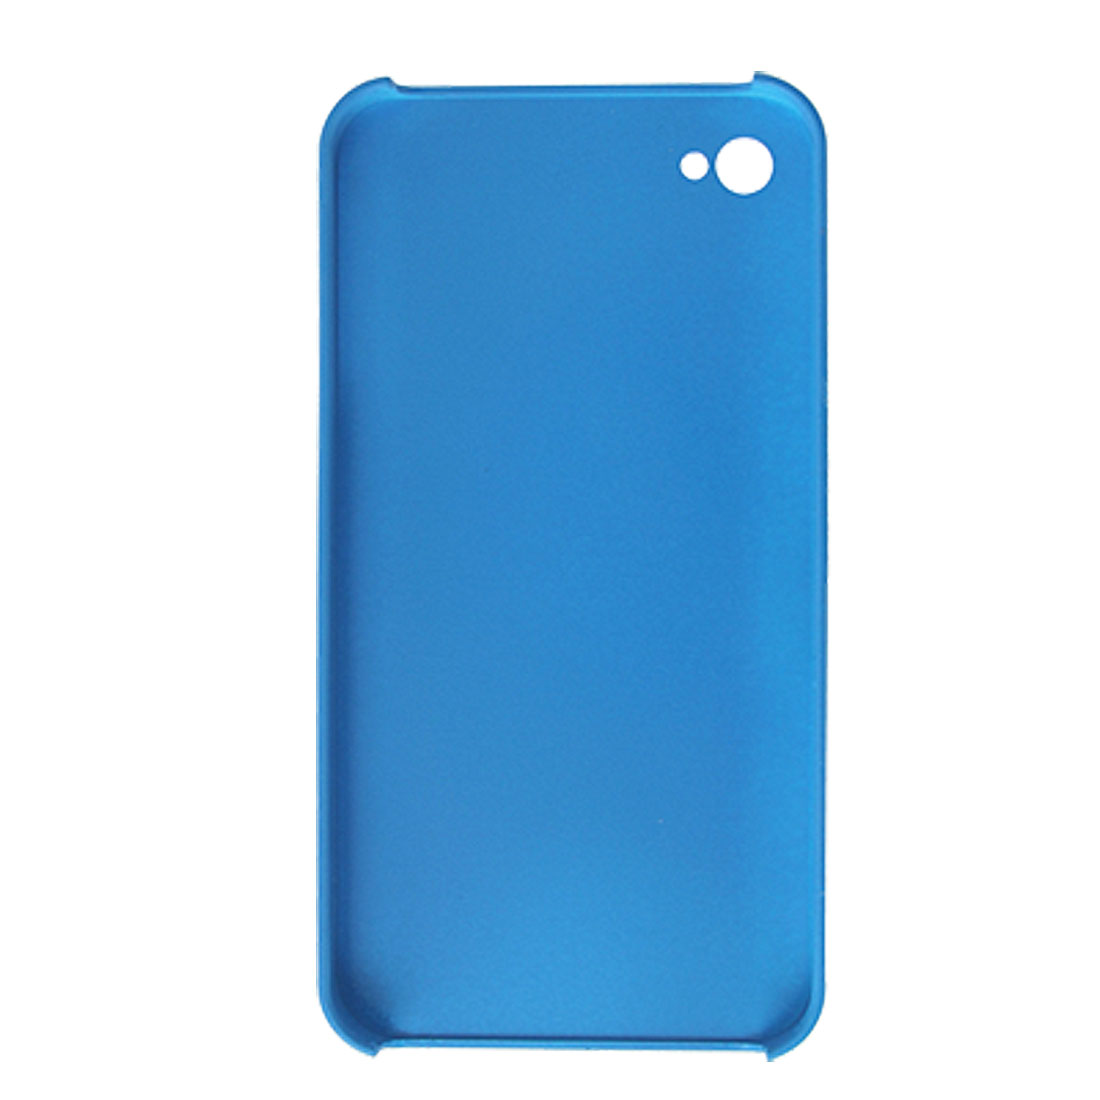 Rubberized Plastic Blue Case Shell for iPhone 4 4G